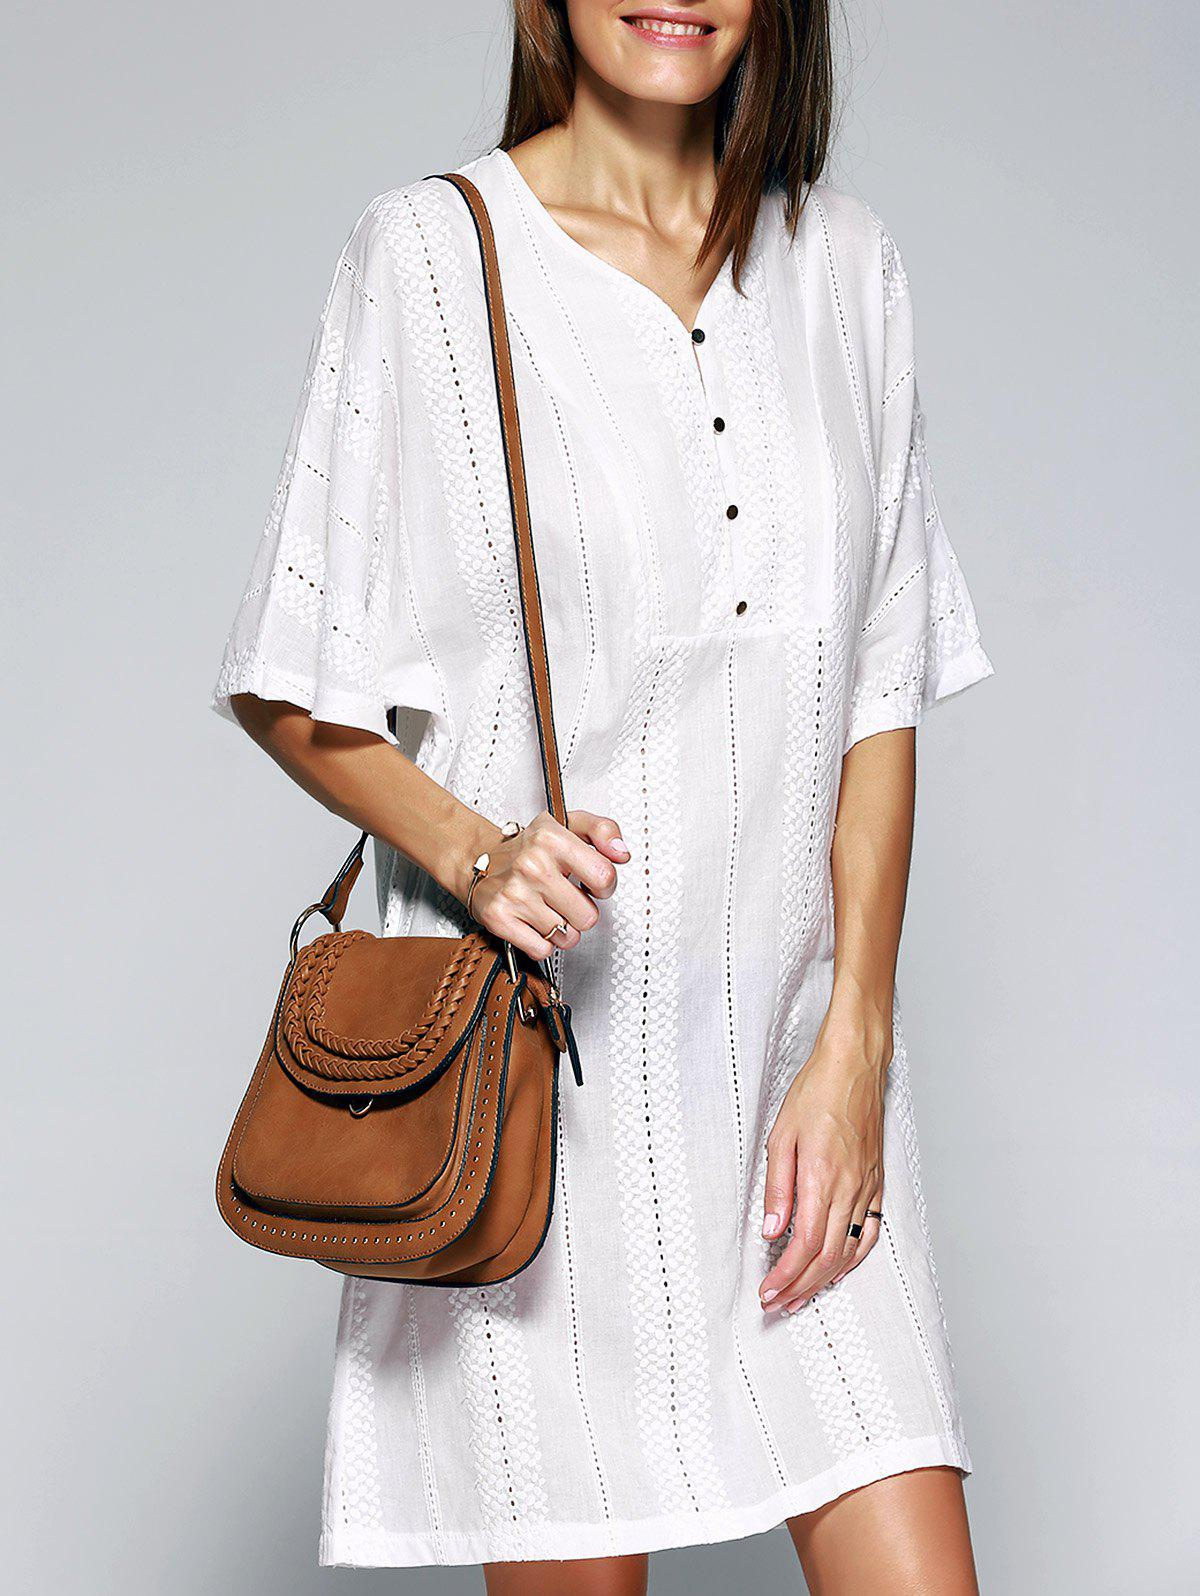 Loose-Fitting V-Neck Hollow Out Buttoned DressWomen<br><br><br>Size: ONE SIZE<br>Color: WHITE